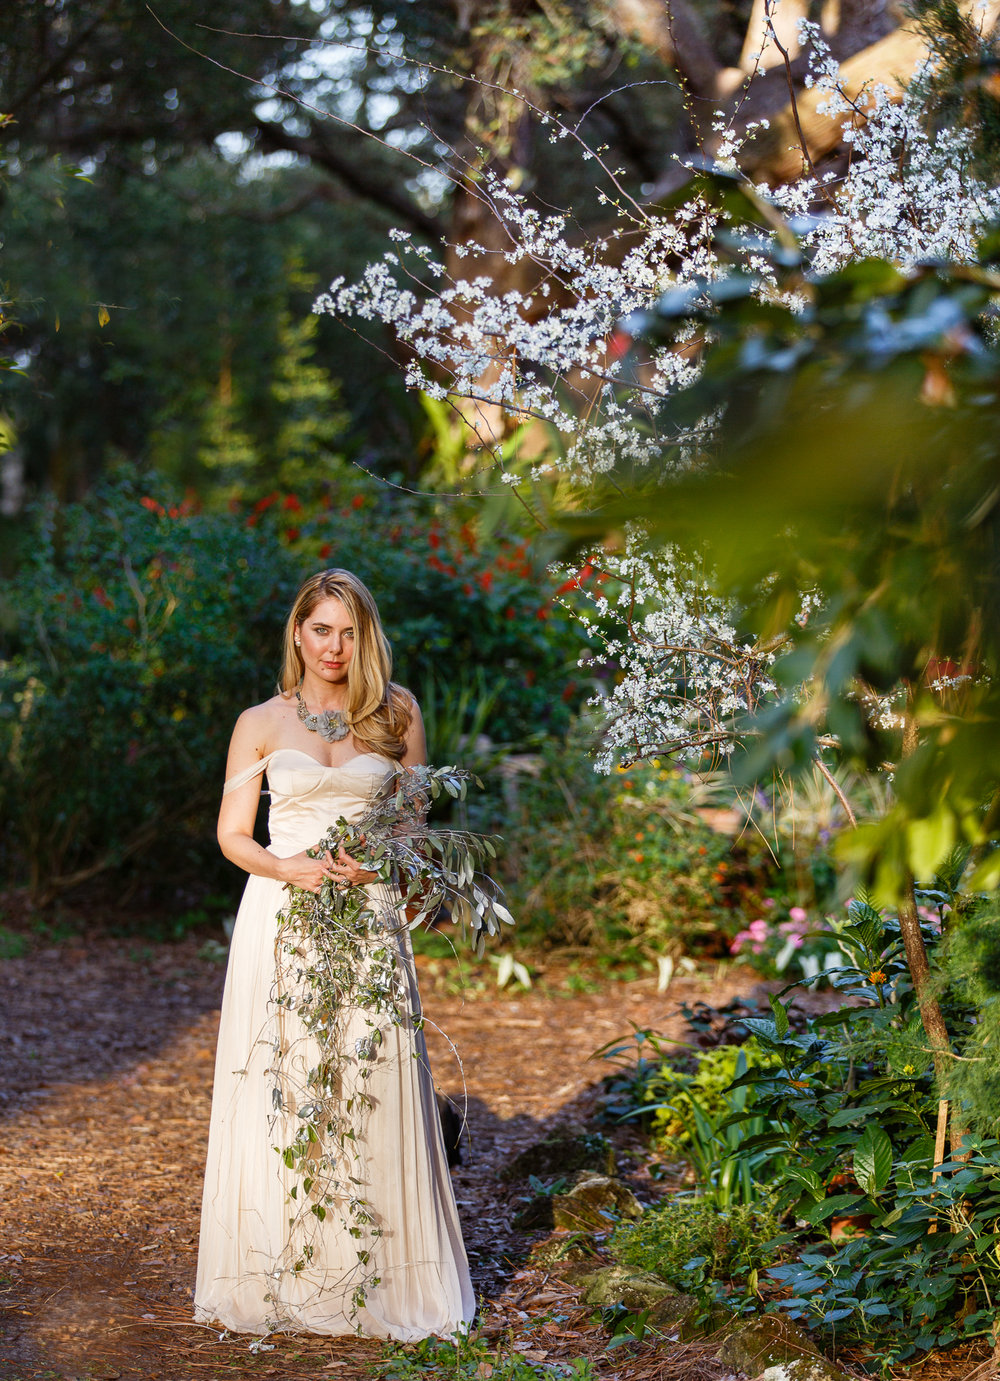 blonde-bride-spring-mead-gardens-wedding-winter-park.jpeg